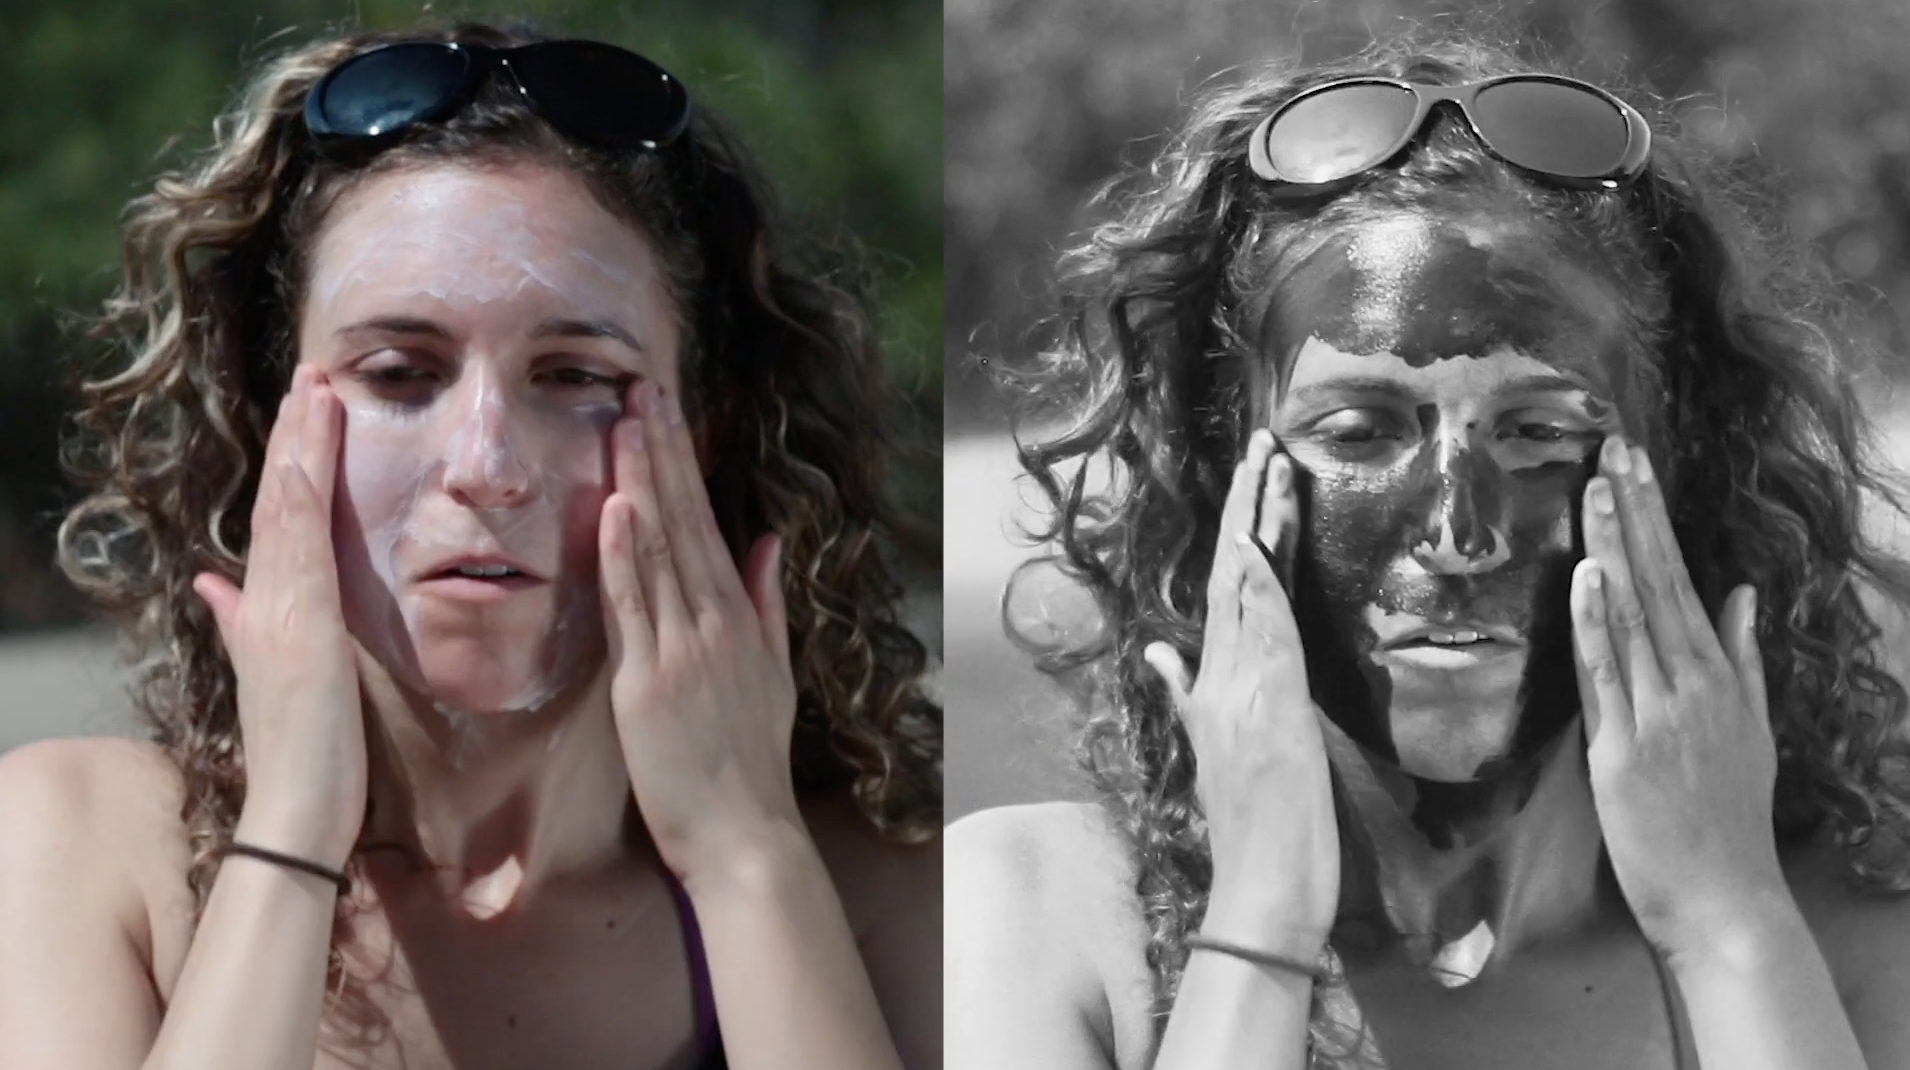 Normal View Vs Sunscreenr View